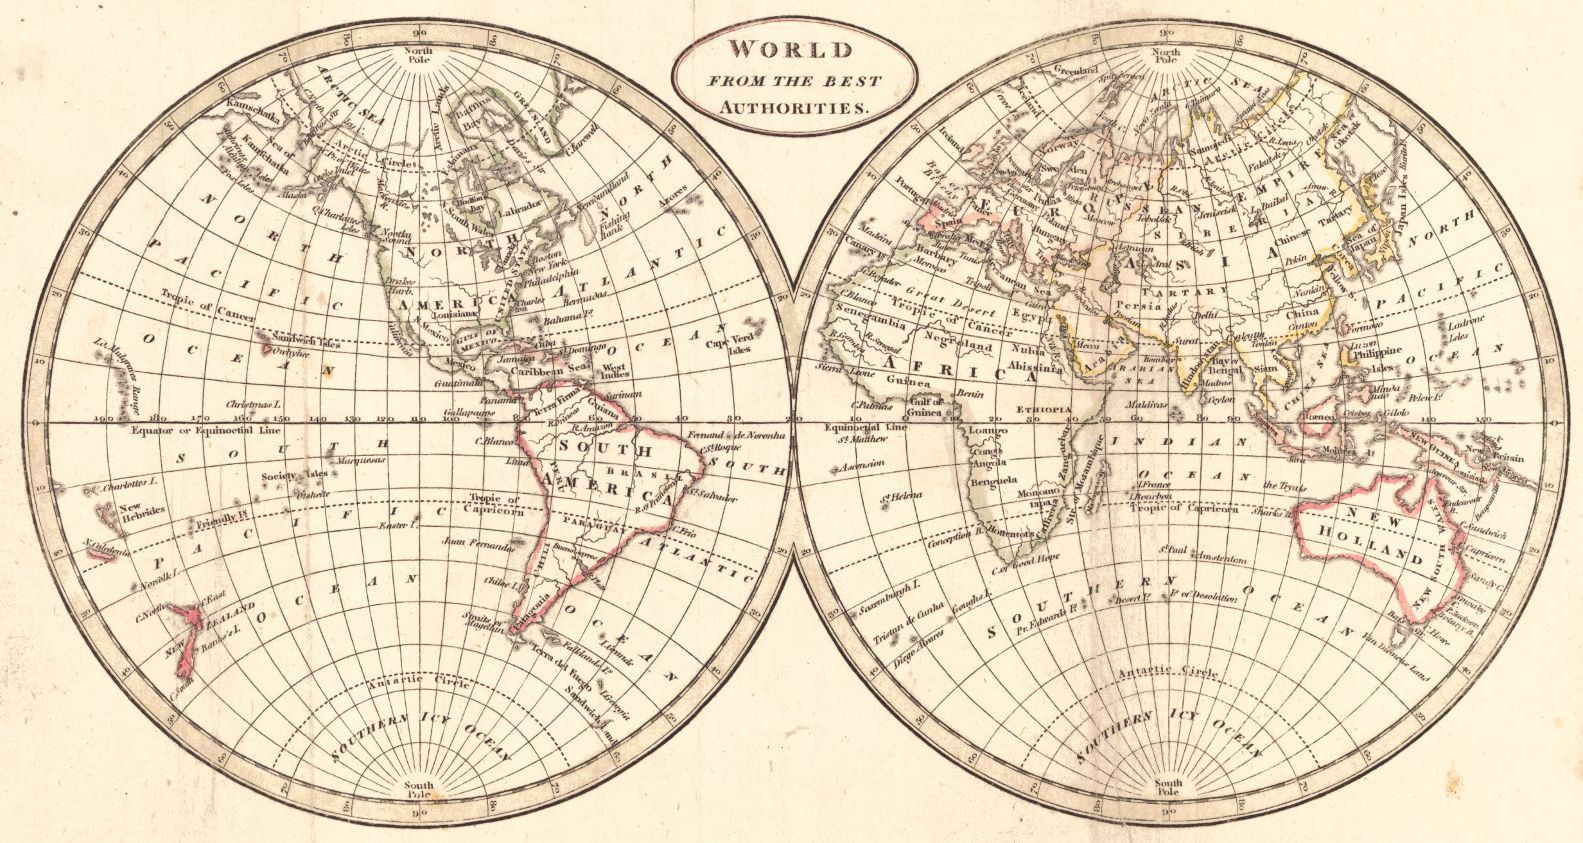 World from the Best Authorities Jacob Johnson Co Brookes